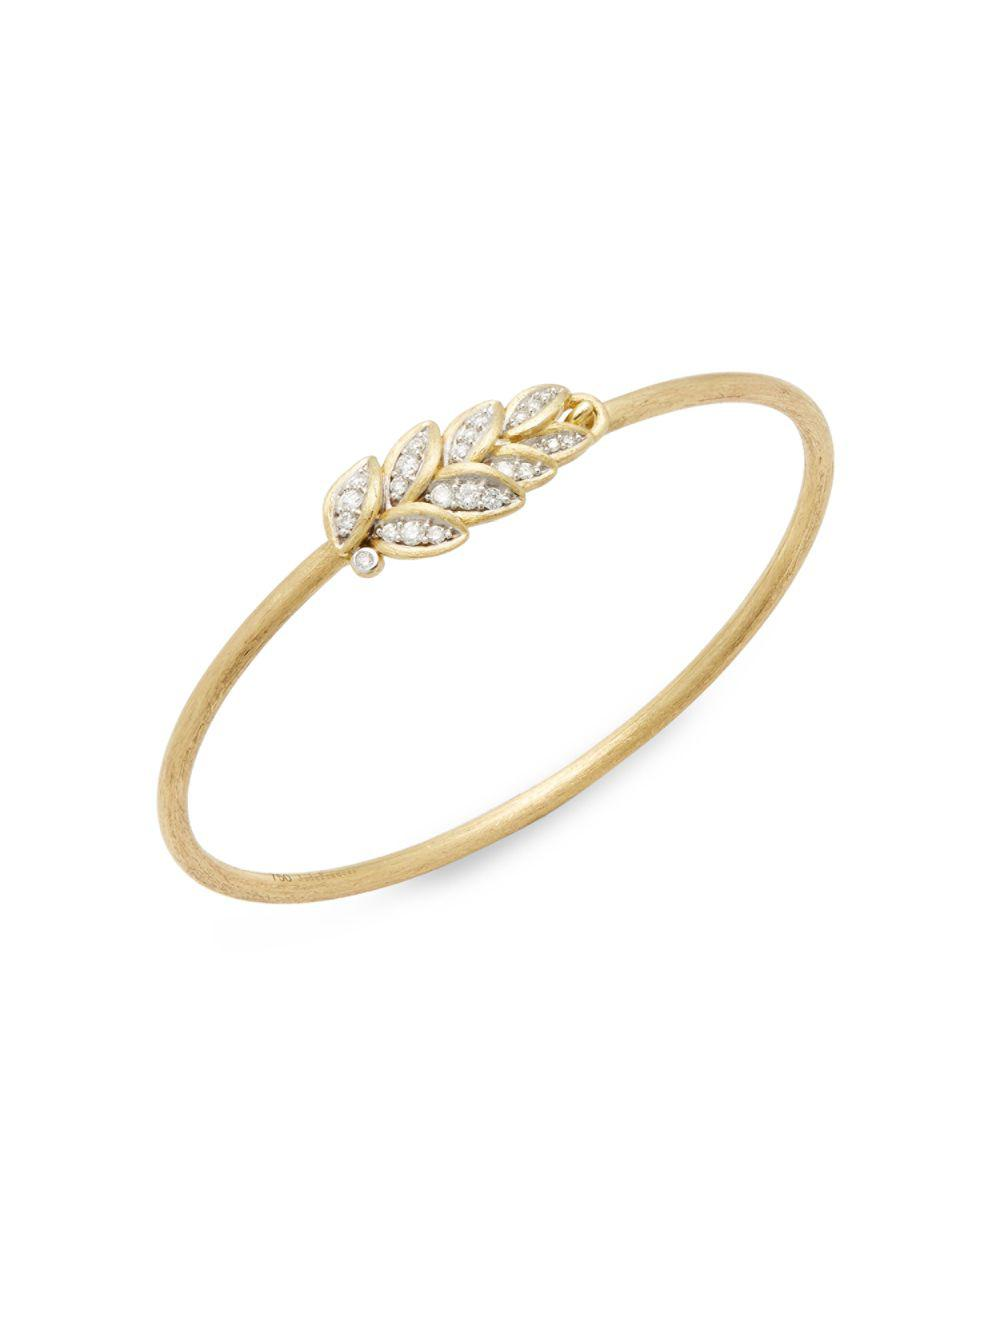 Jude Frances Lisse Moonstone & Diamond Band Ring in 18k Yellow Gold OZemCA8h